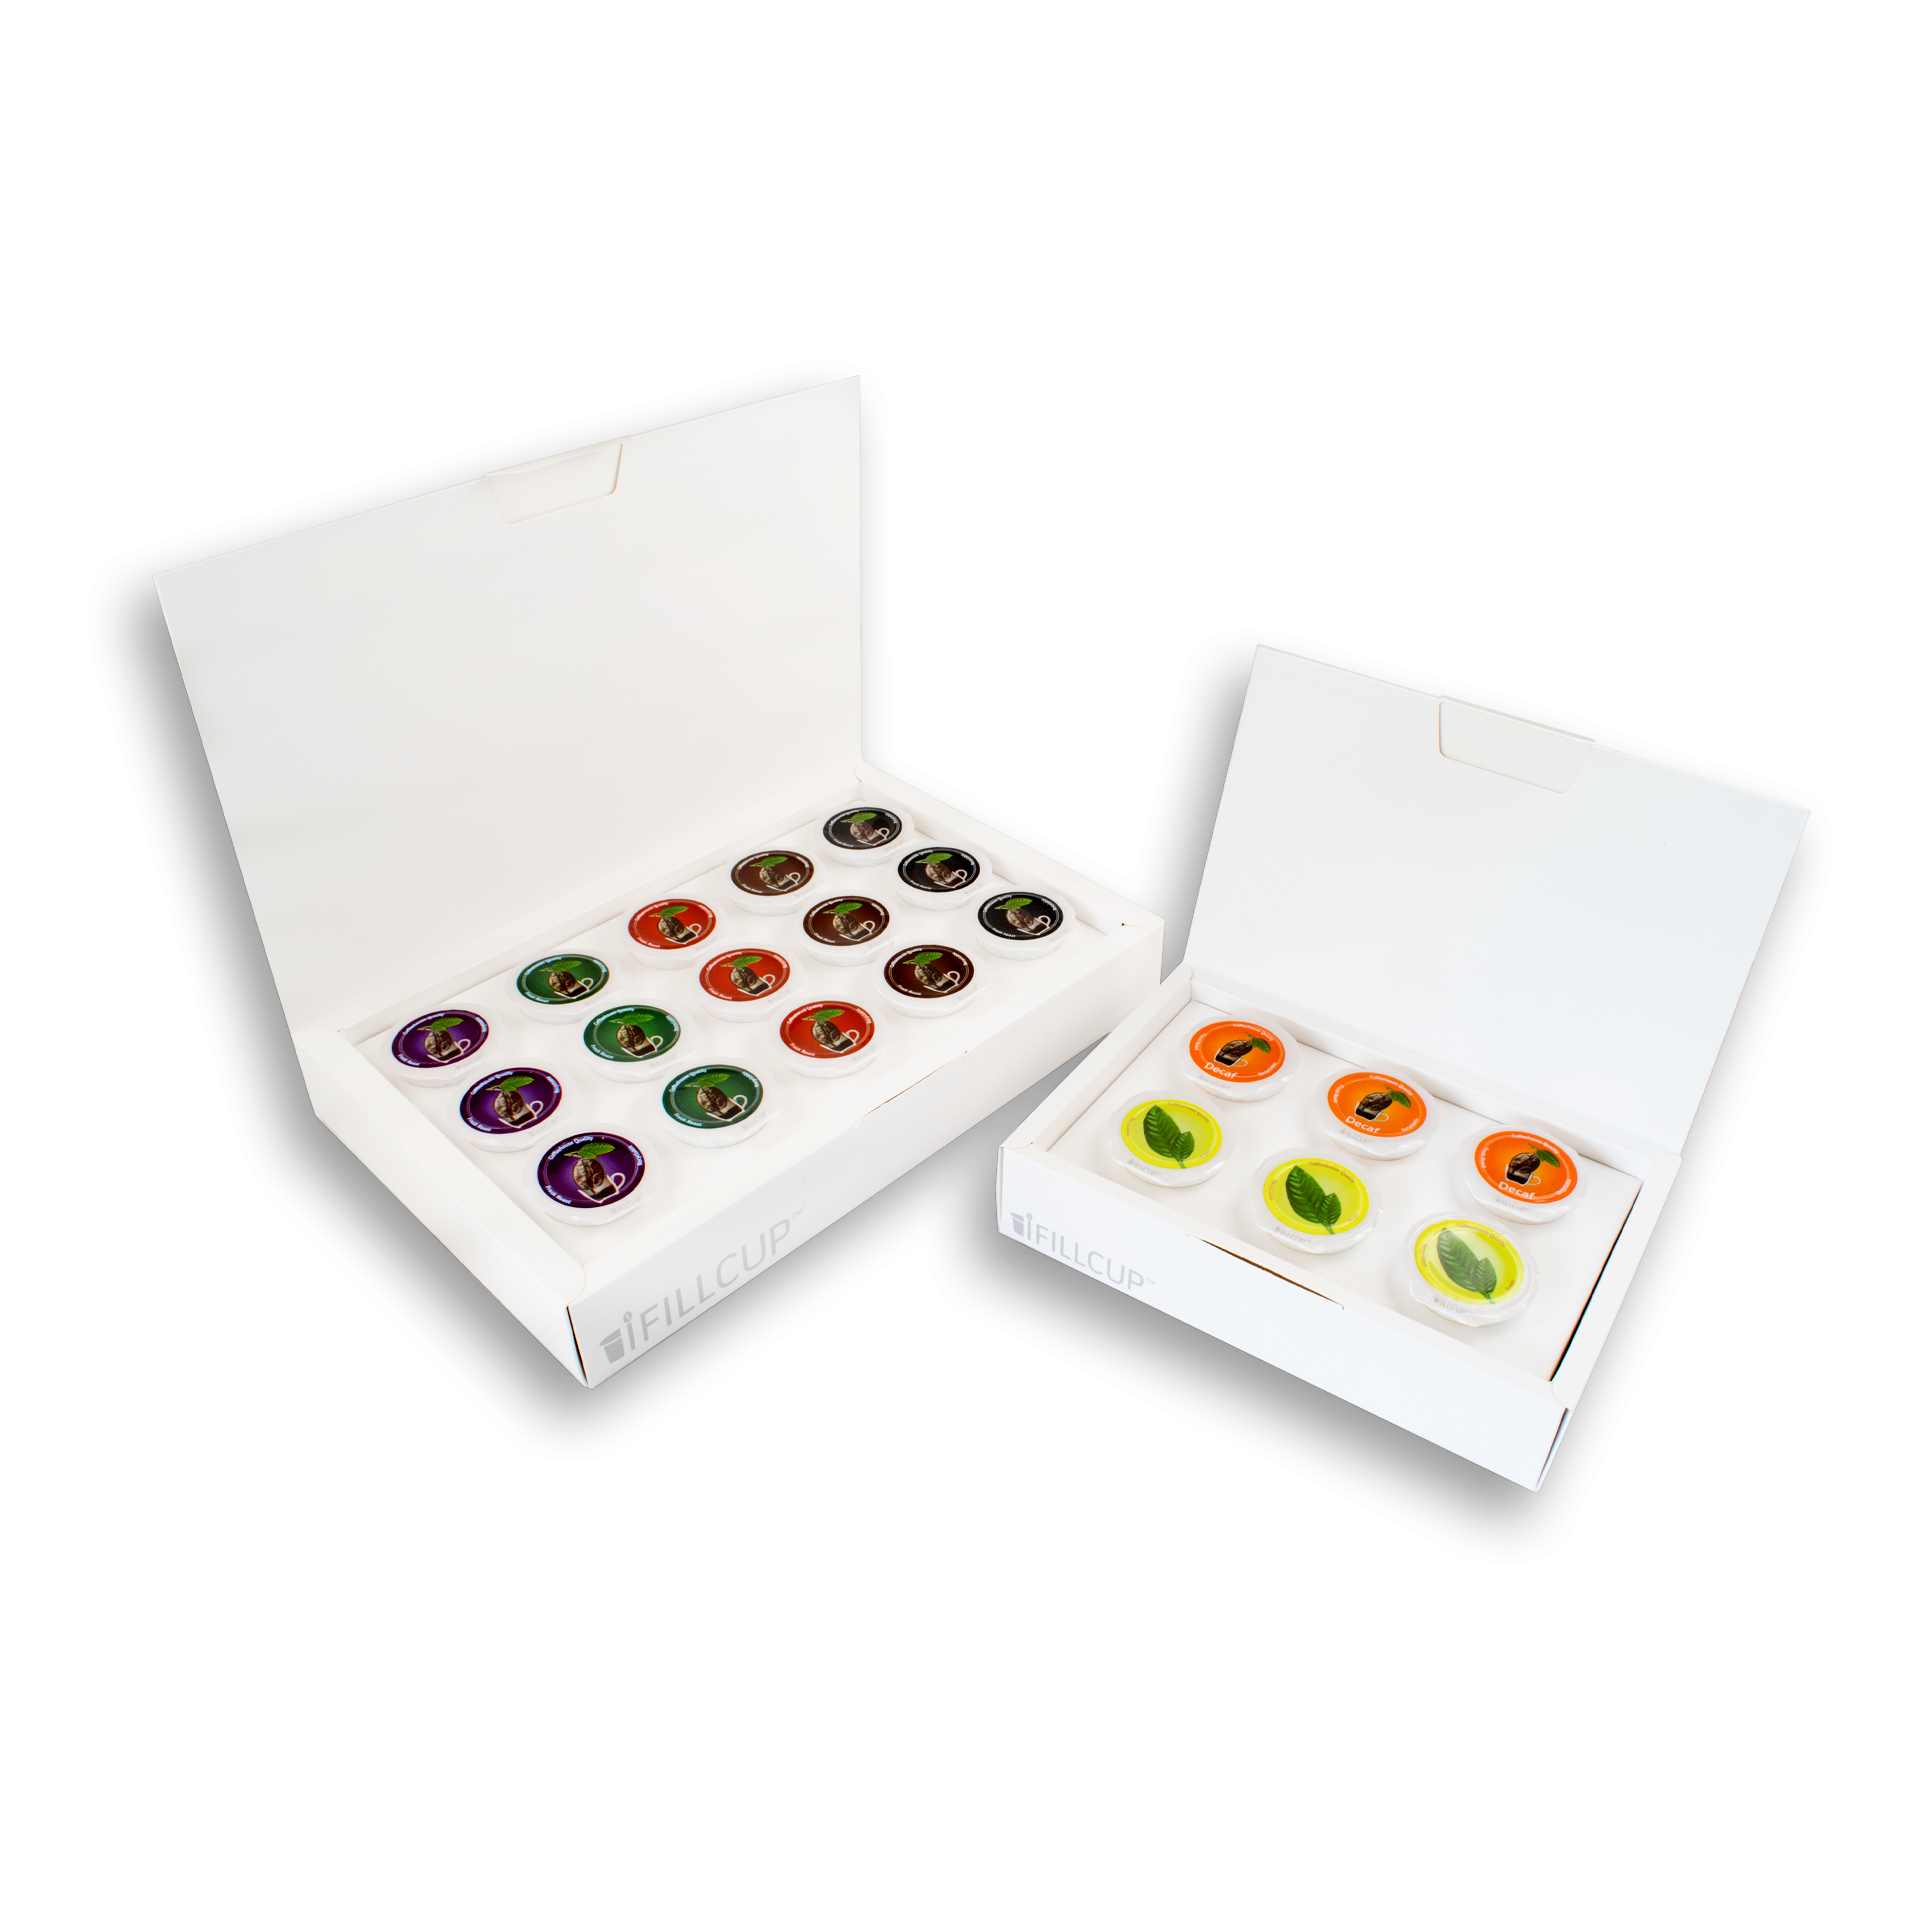 iFillCup Presentation Boxes, Large and Small with Color Lids